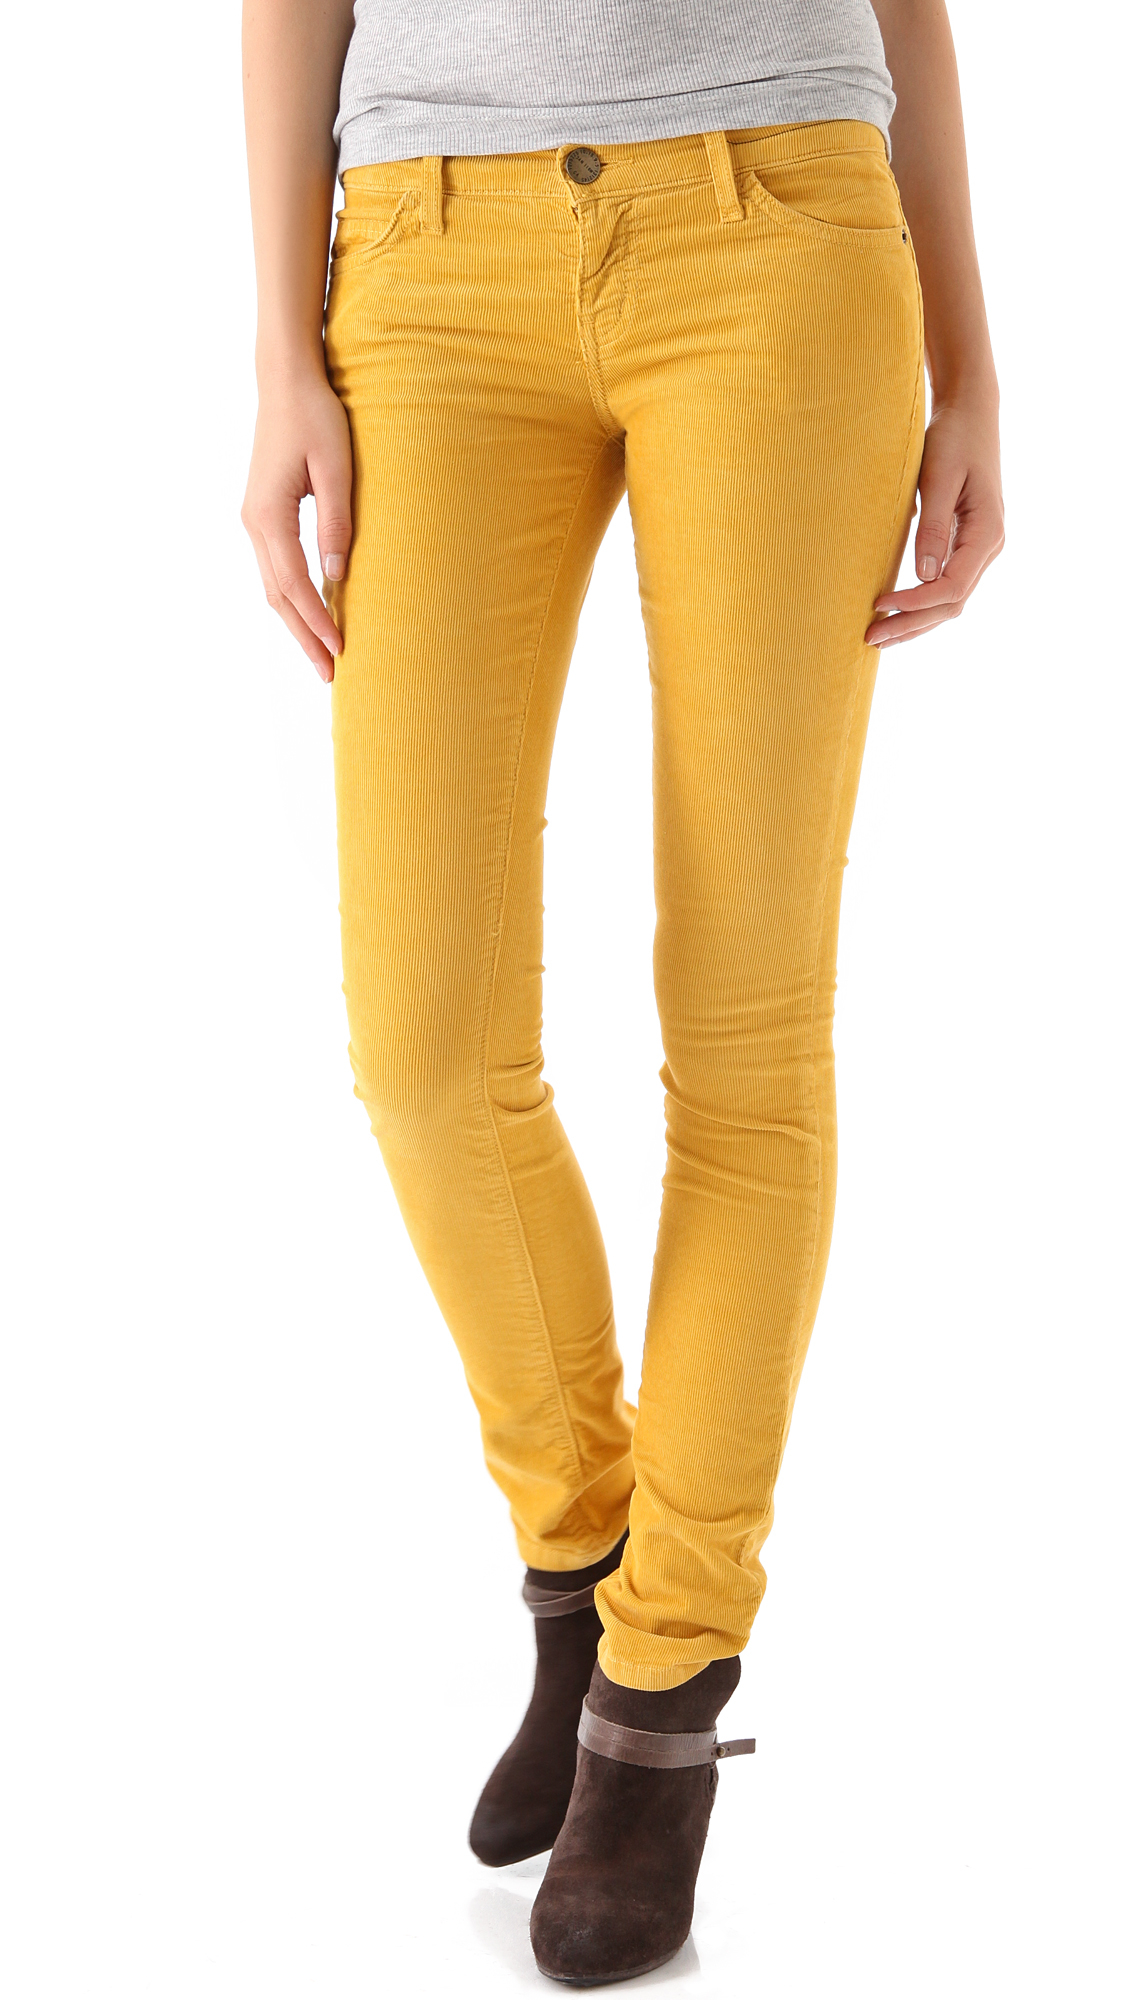 Popular Pantalon En Velours Ctel Jaune Moutarde Px Boutique 170 Taille